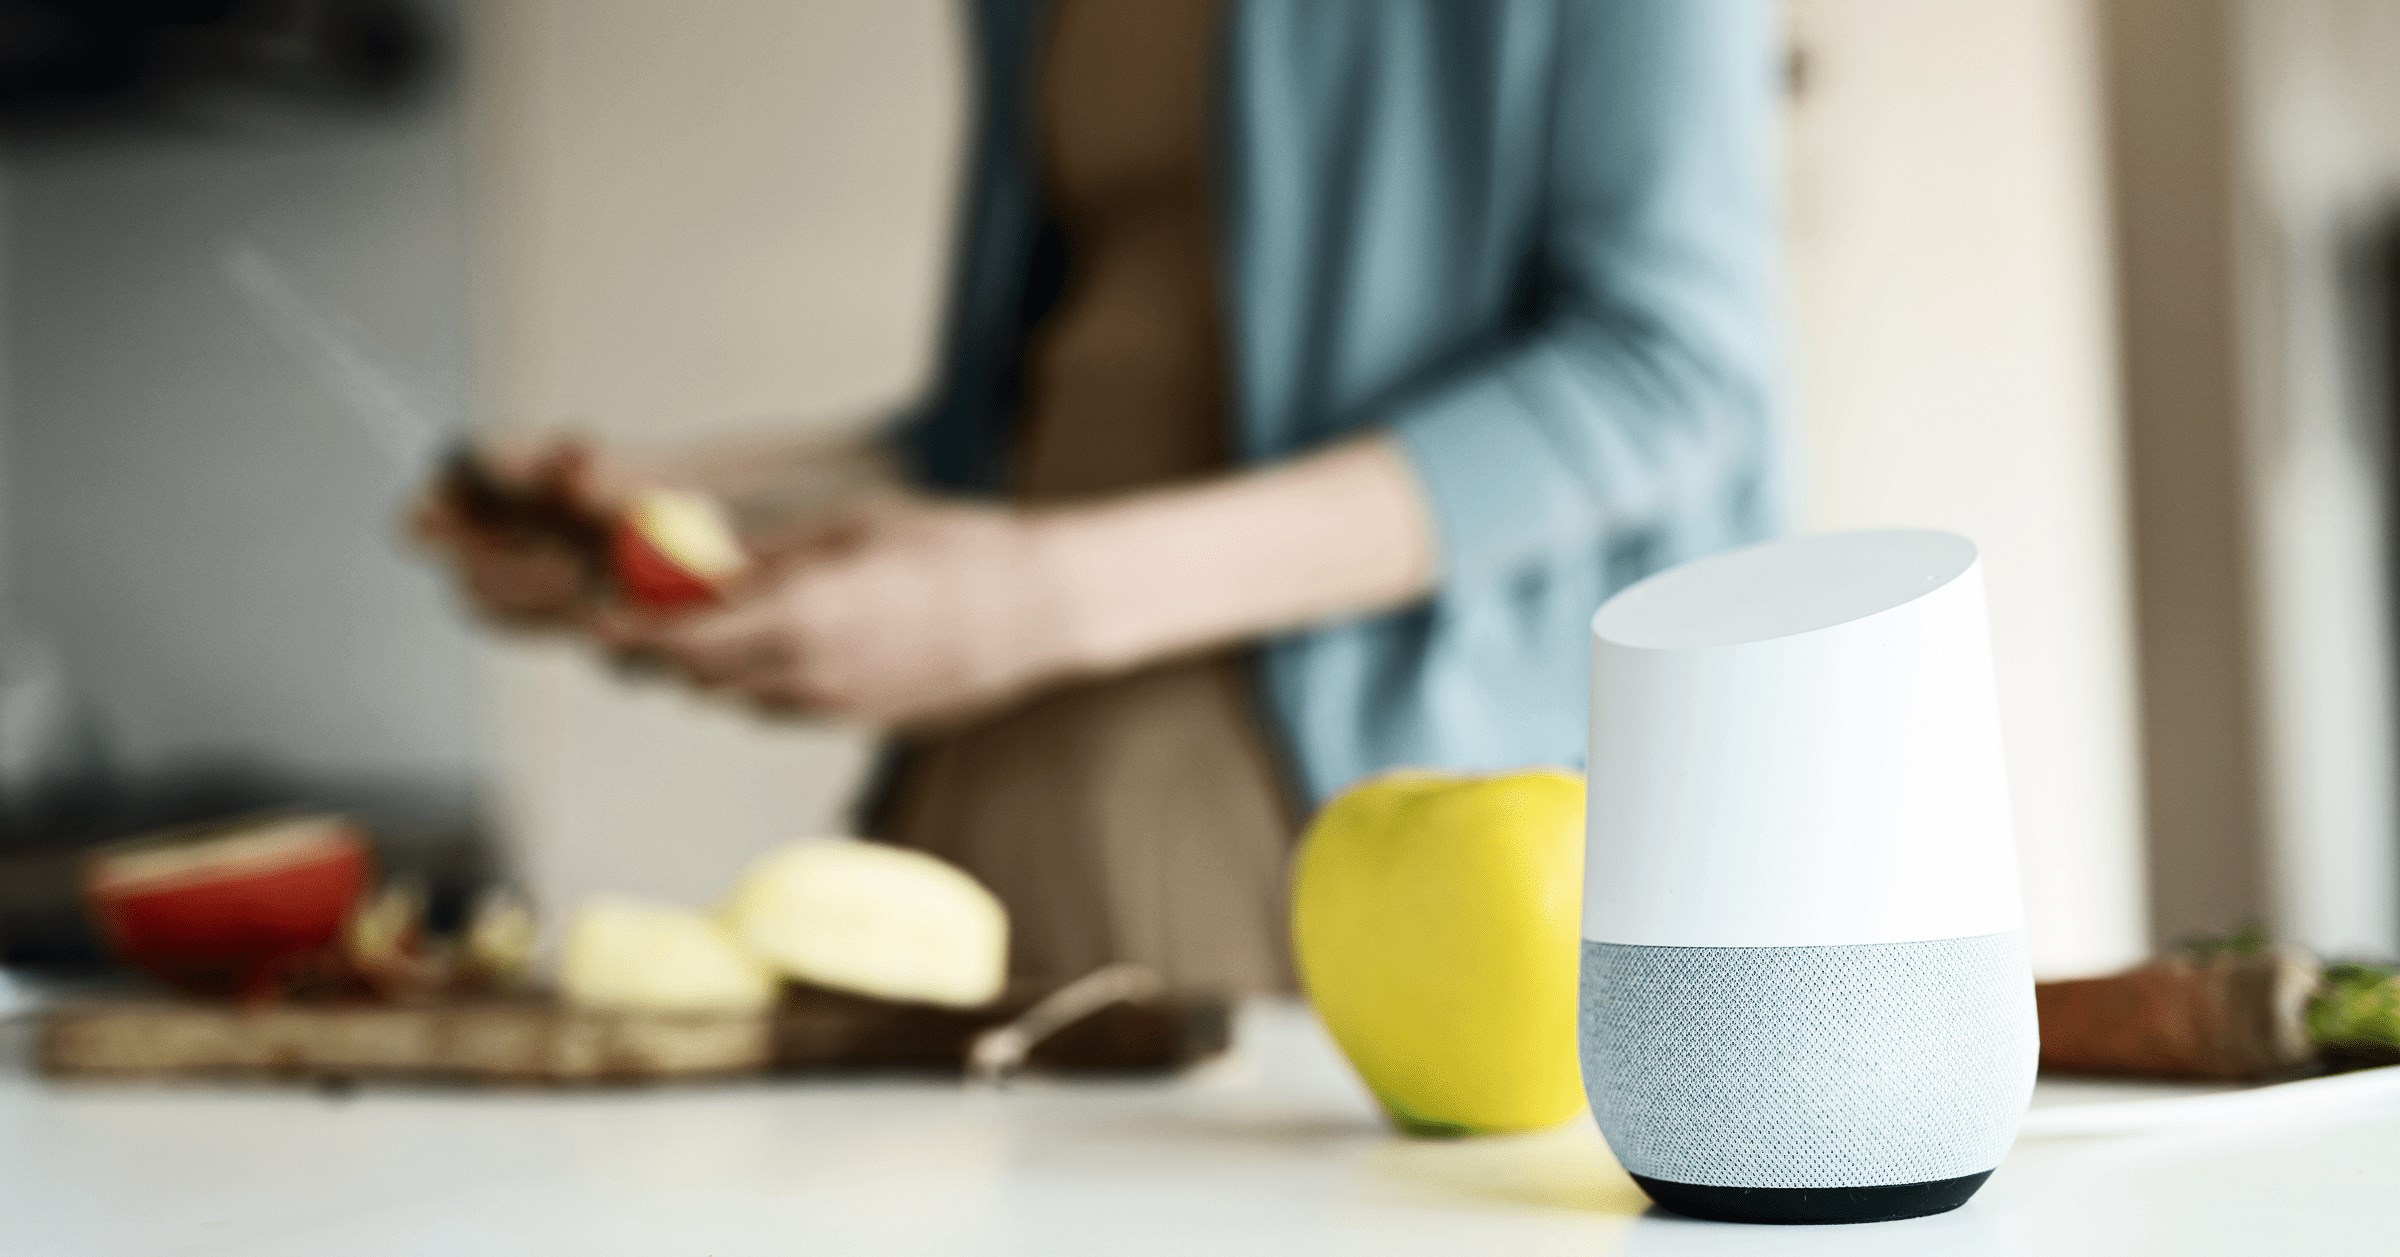 Smart Style: Voice Assistants Give New Meaning to 'Fast Fashion'